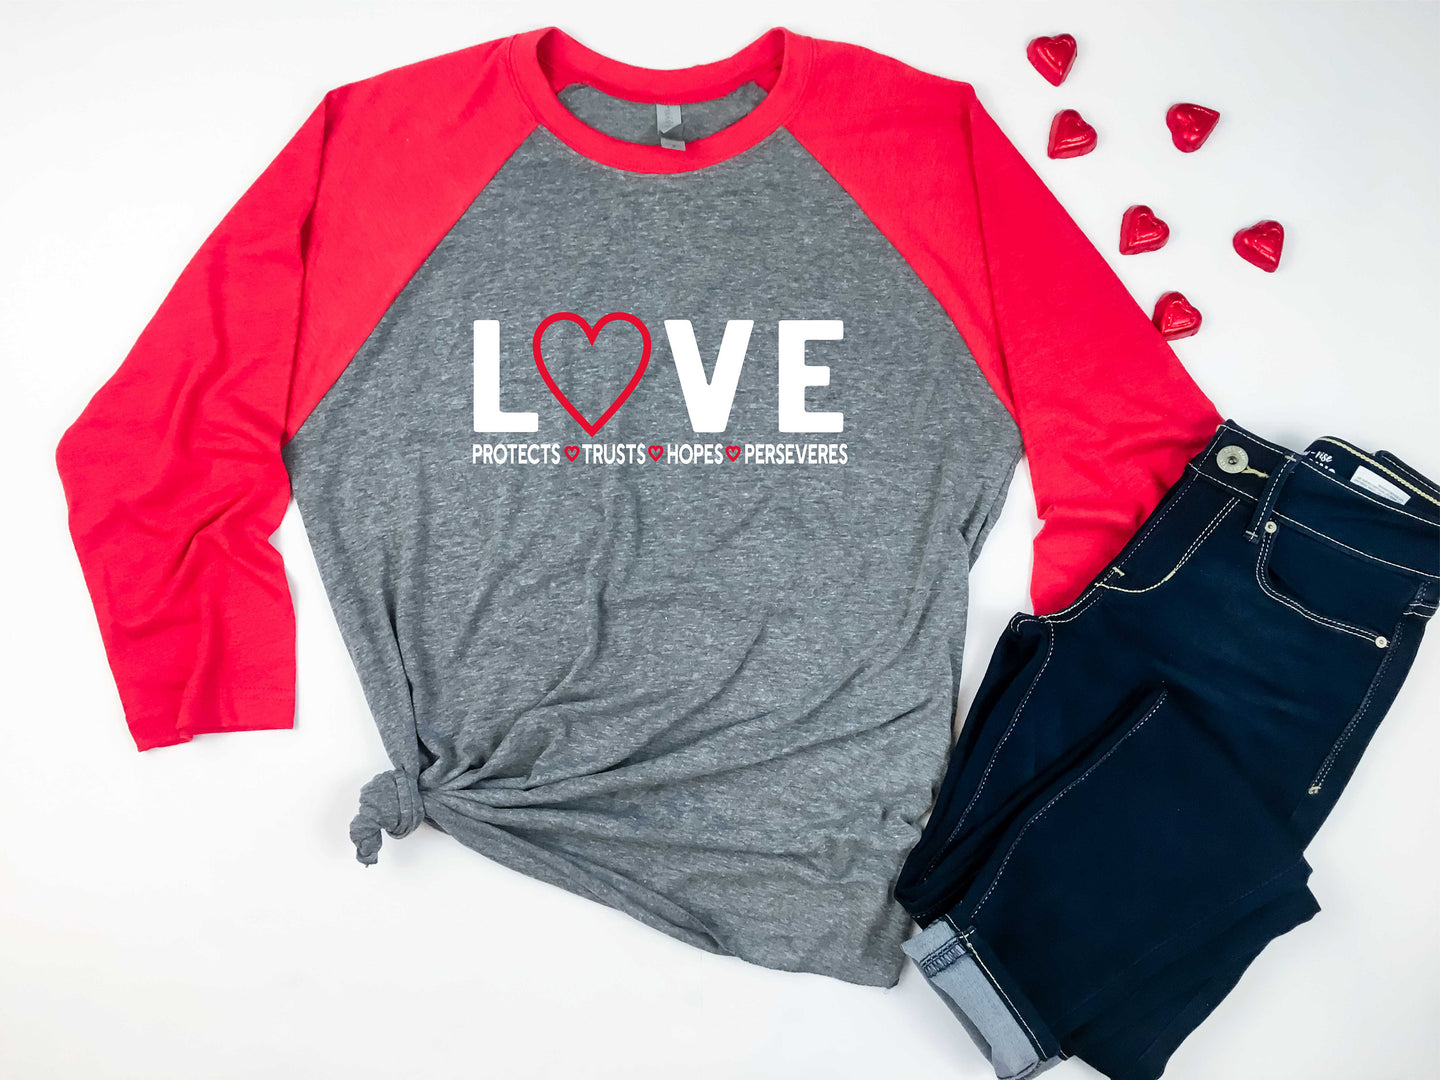 LOVE Protects.Trusts. Hopes. Perseveres {3/4inch Long Sleeve Crew Neck Raglan Baseball Tee}